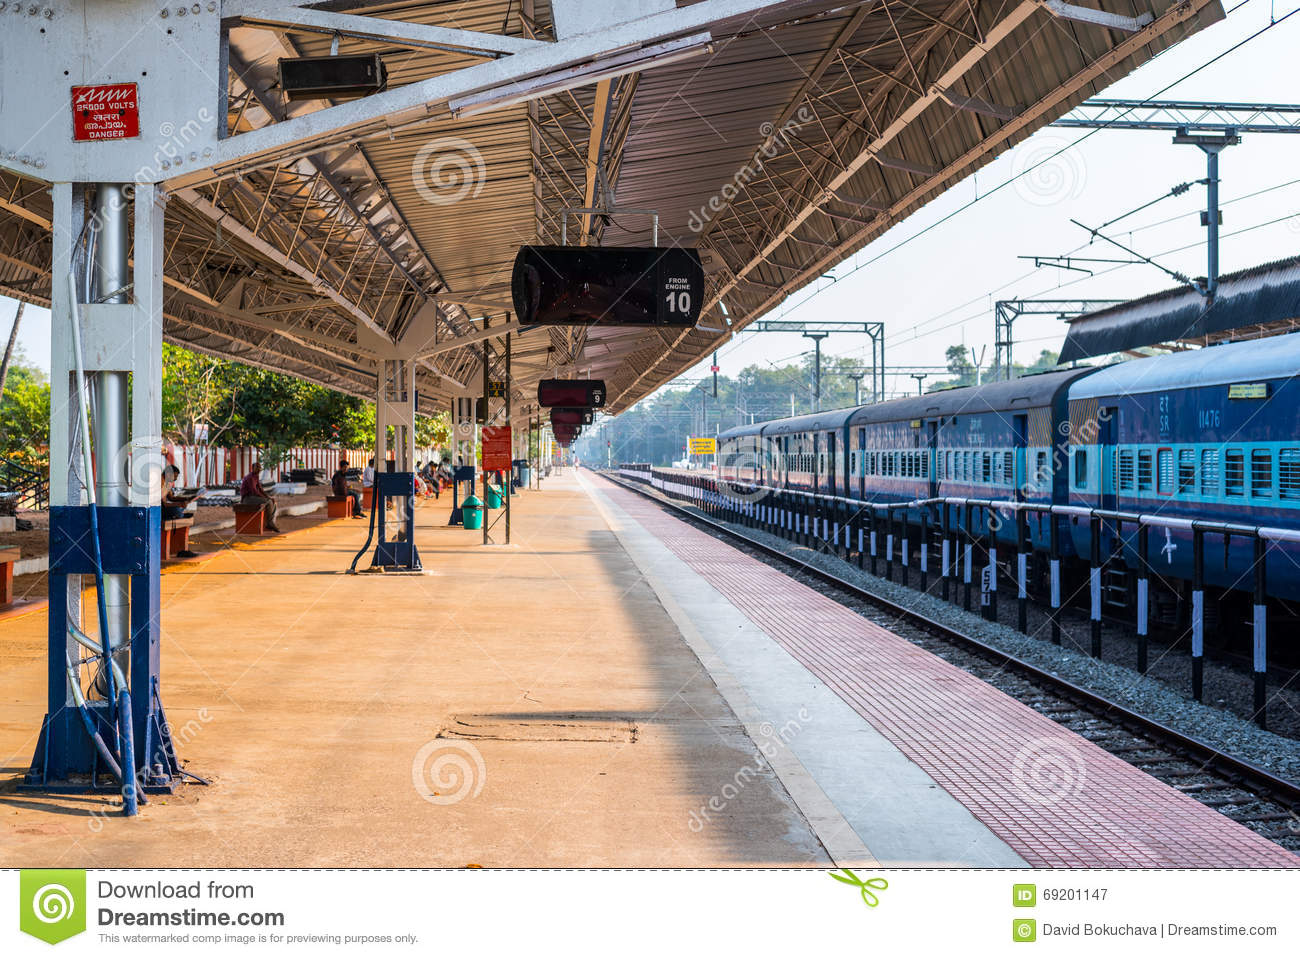 Alleppey India  city images : ... the Alleppey railway station on February 7, 2016 in Alleppey, India